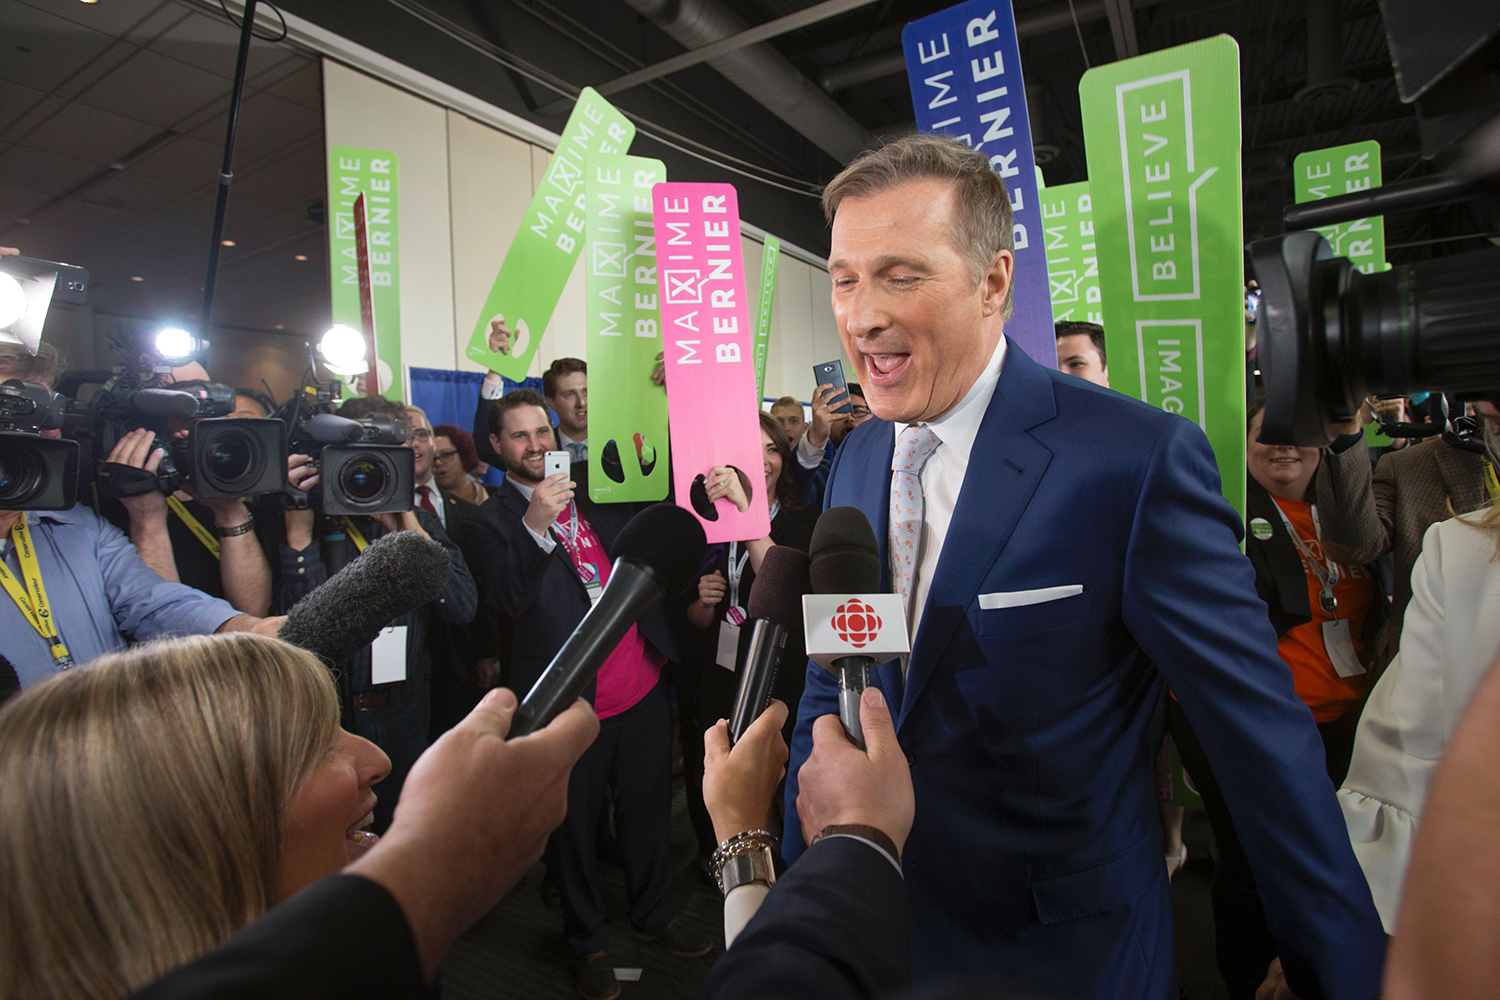 Bernier speaks to the media during the Conservative Party of Canada Leadership Event in Toronto, Ontario, on May 27, 2017.